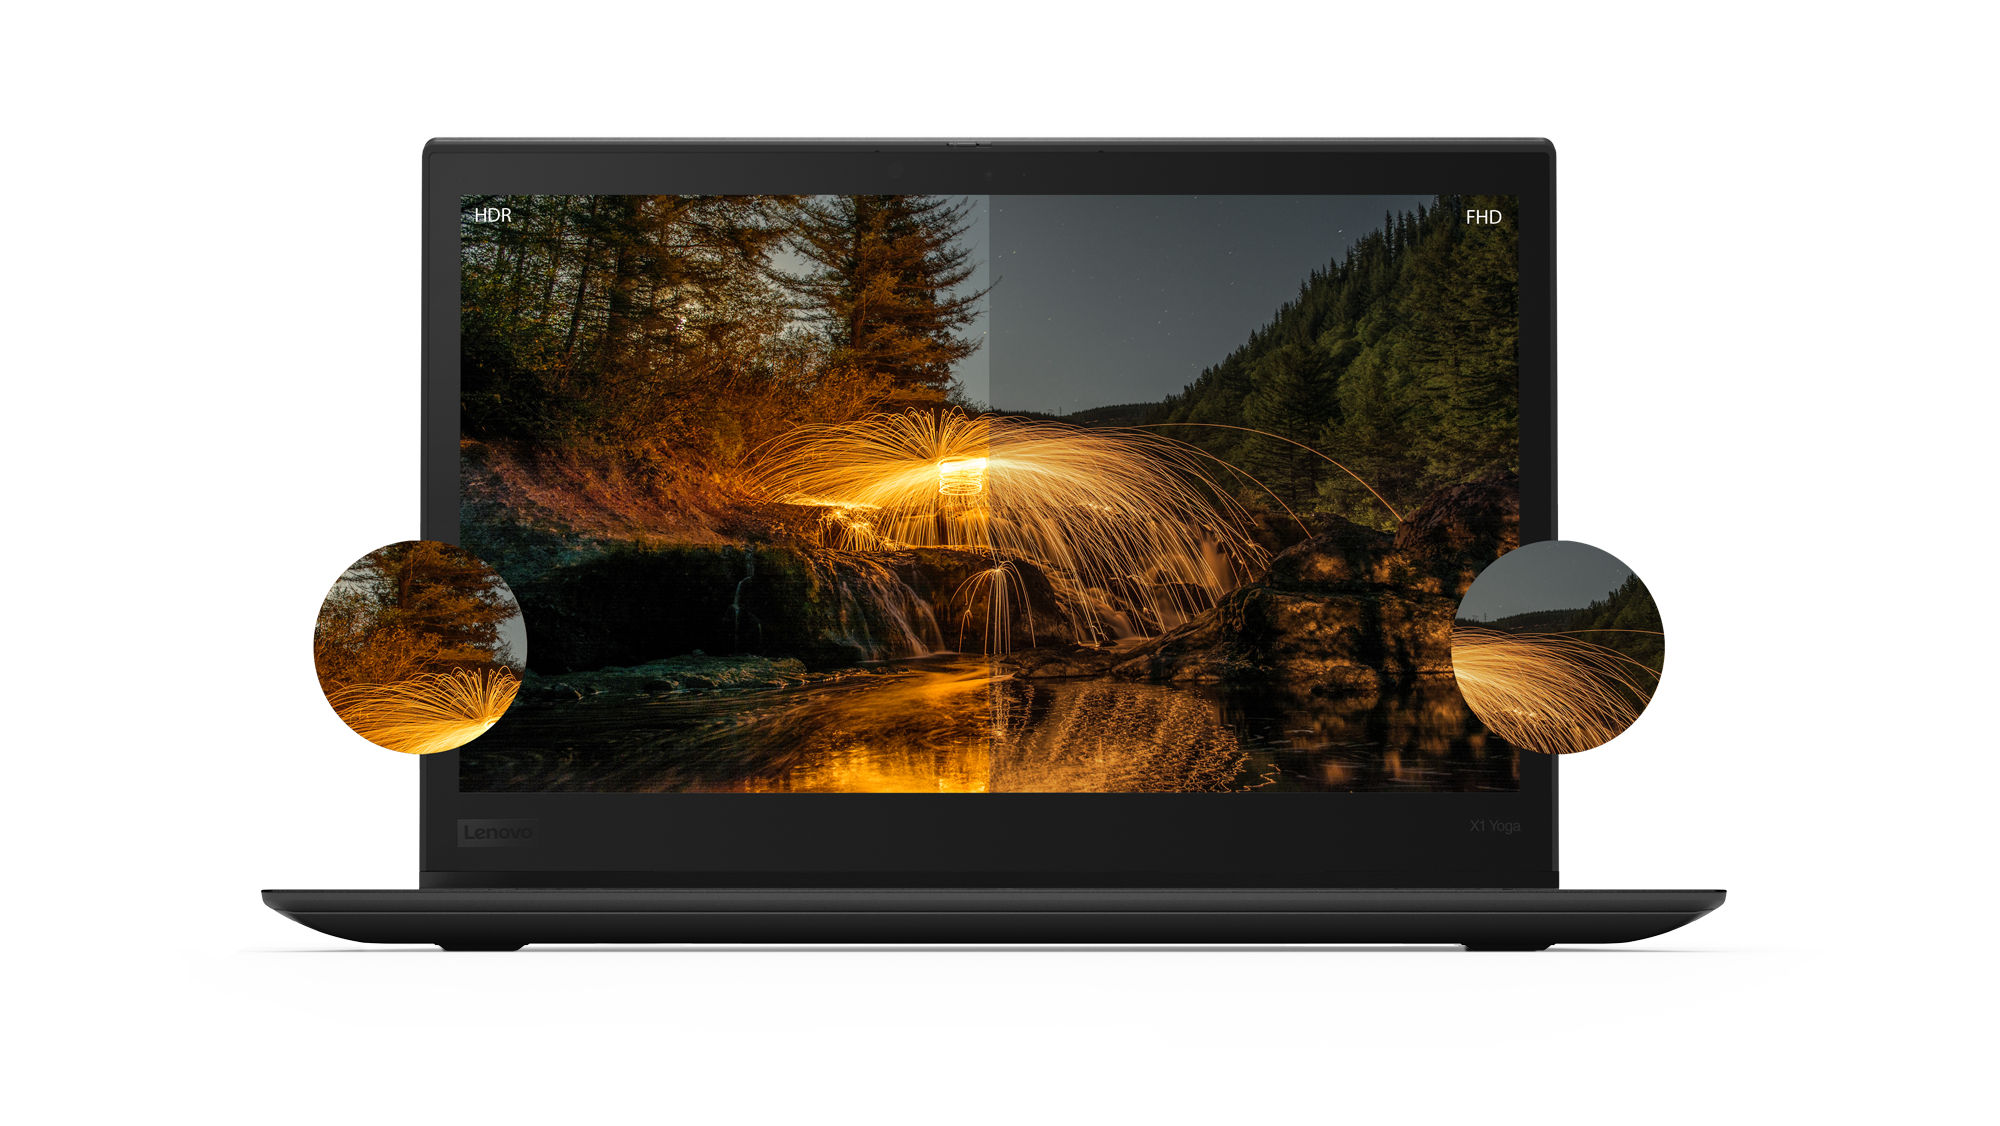 New Lenovo ThinkPad X1 Carbon packs Alexa, Dolby Vision HDR display